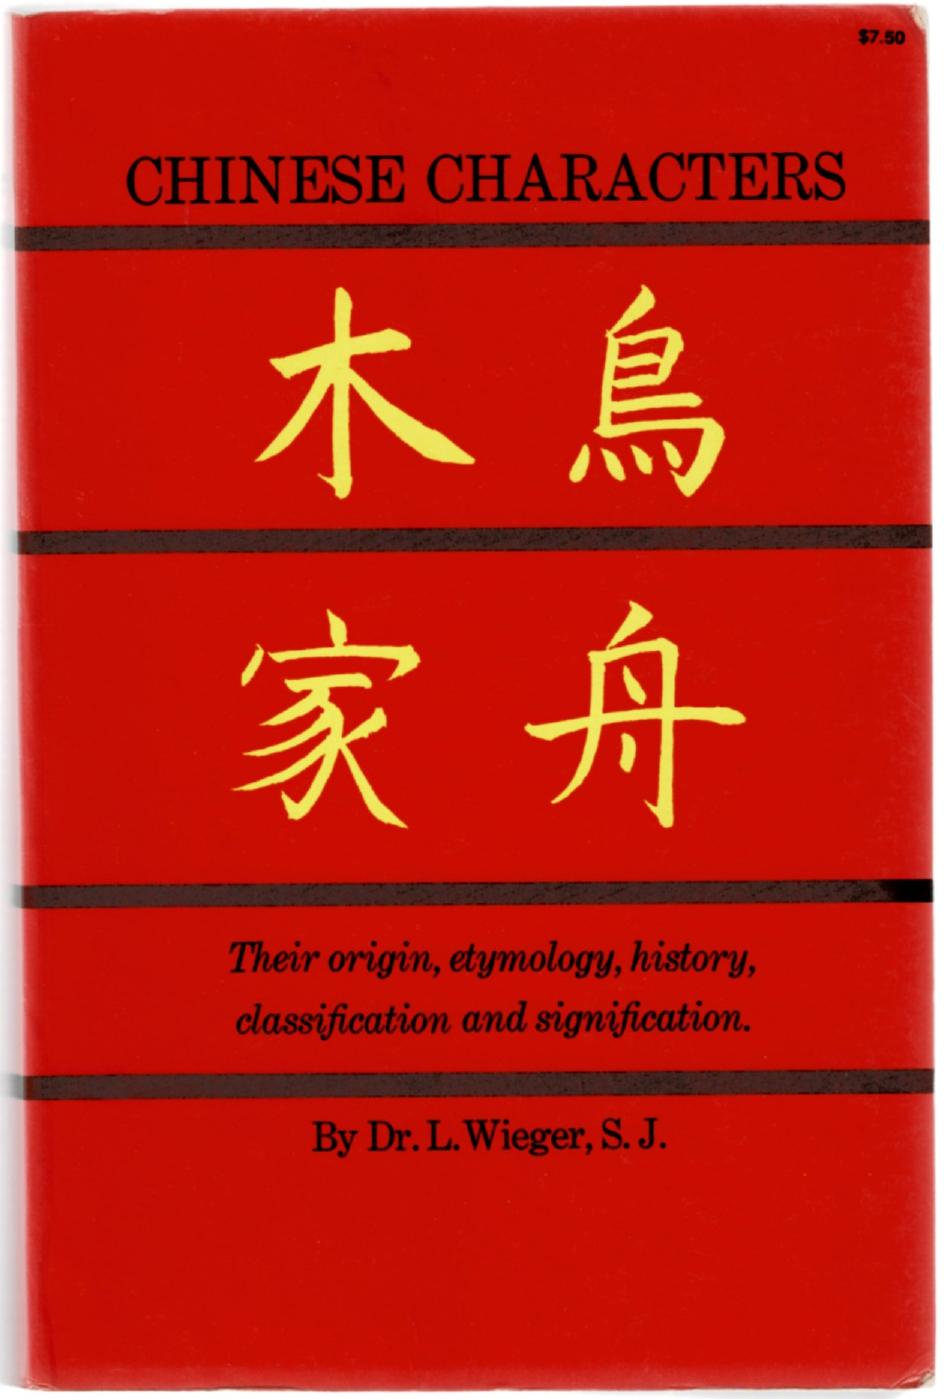 Image for Chinese Characters: Their Origin, Etymology, History, Classification and Signification